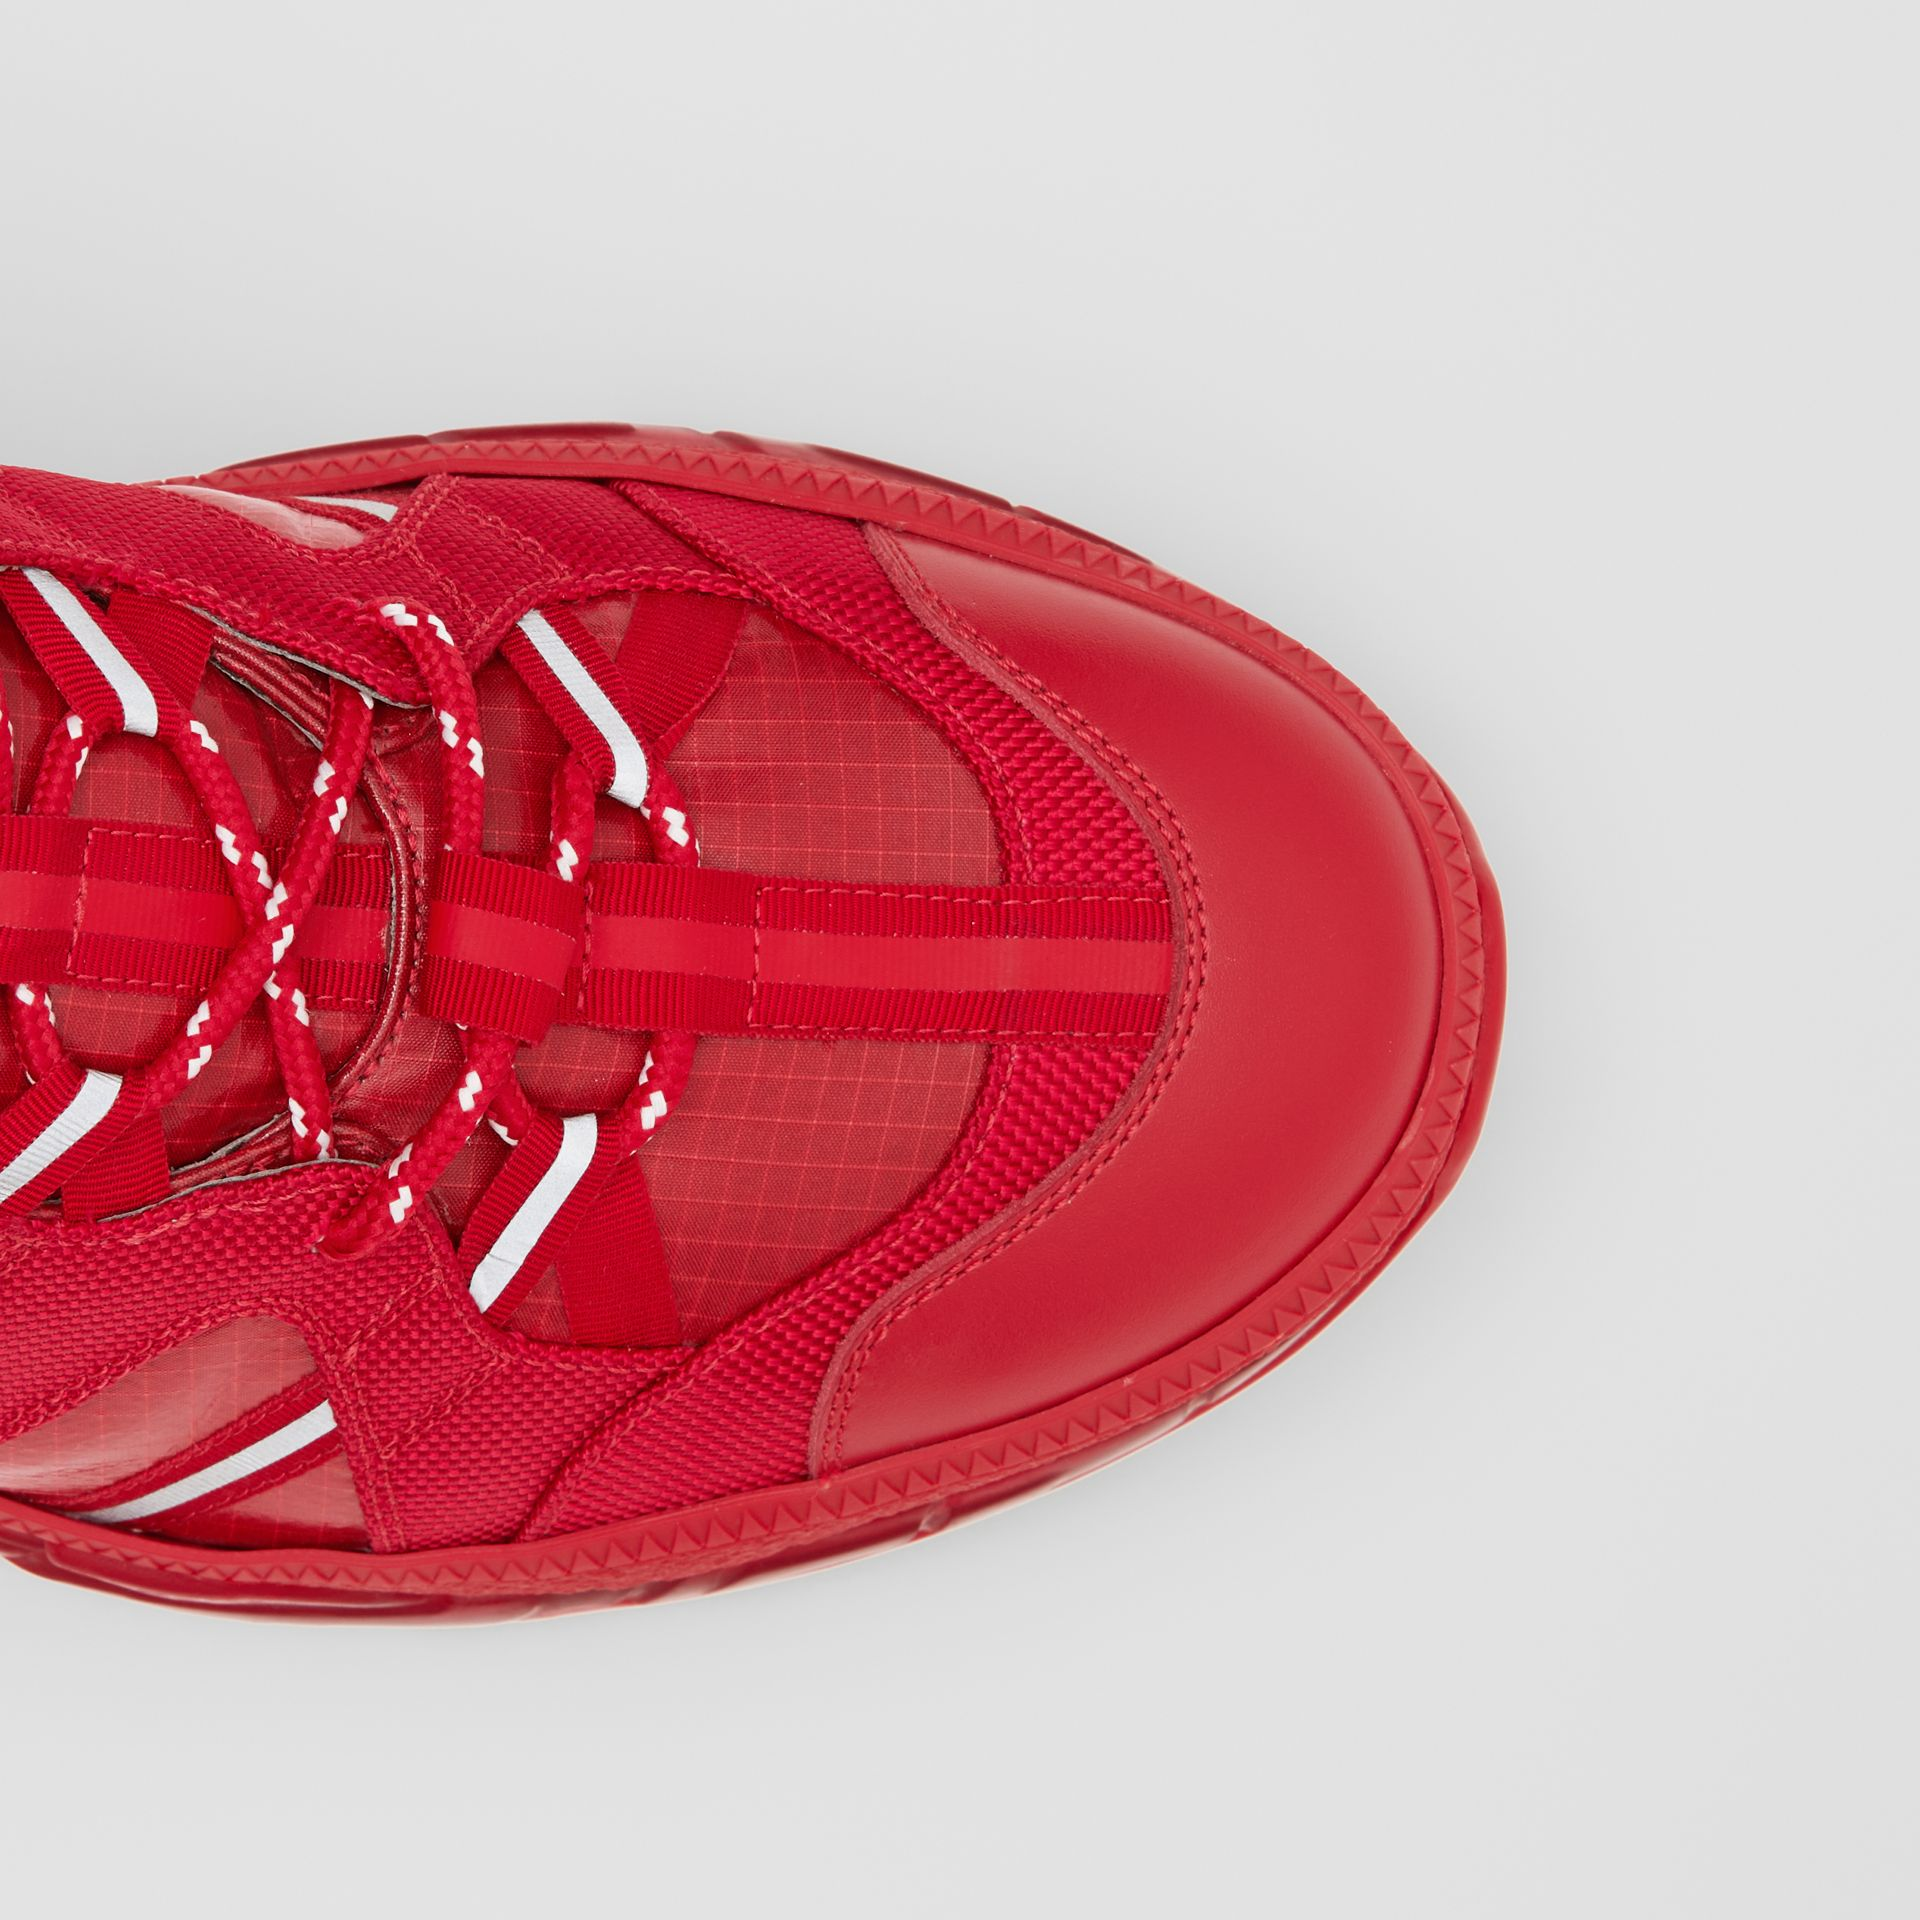 Nylon and Leather Union Sneakers in Bright Red - Women | Burberry - gallery image 4